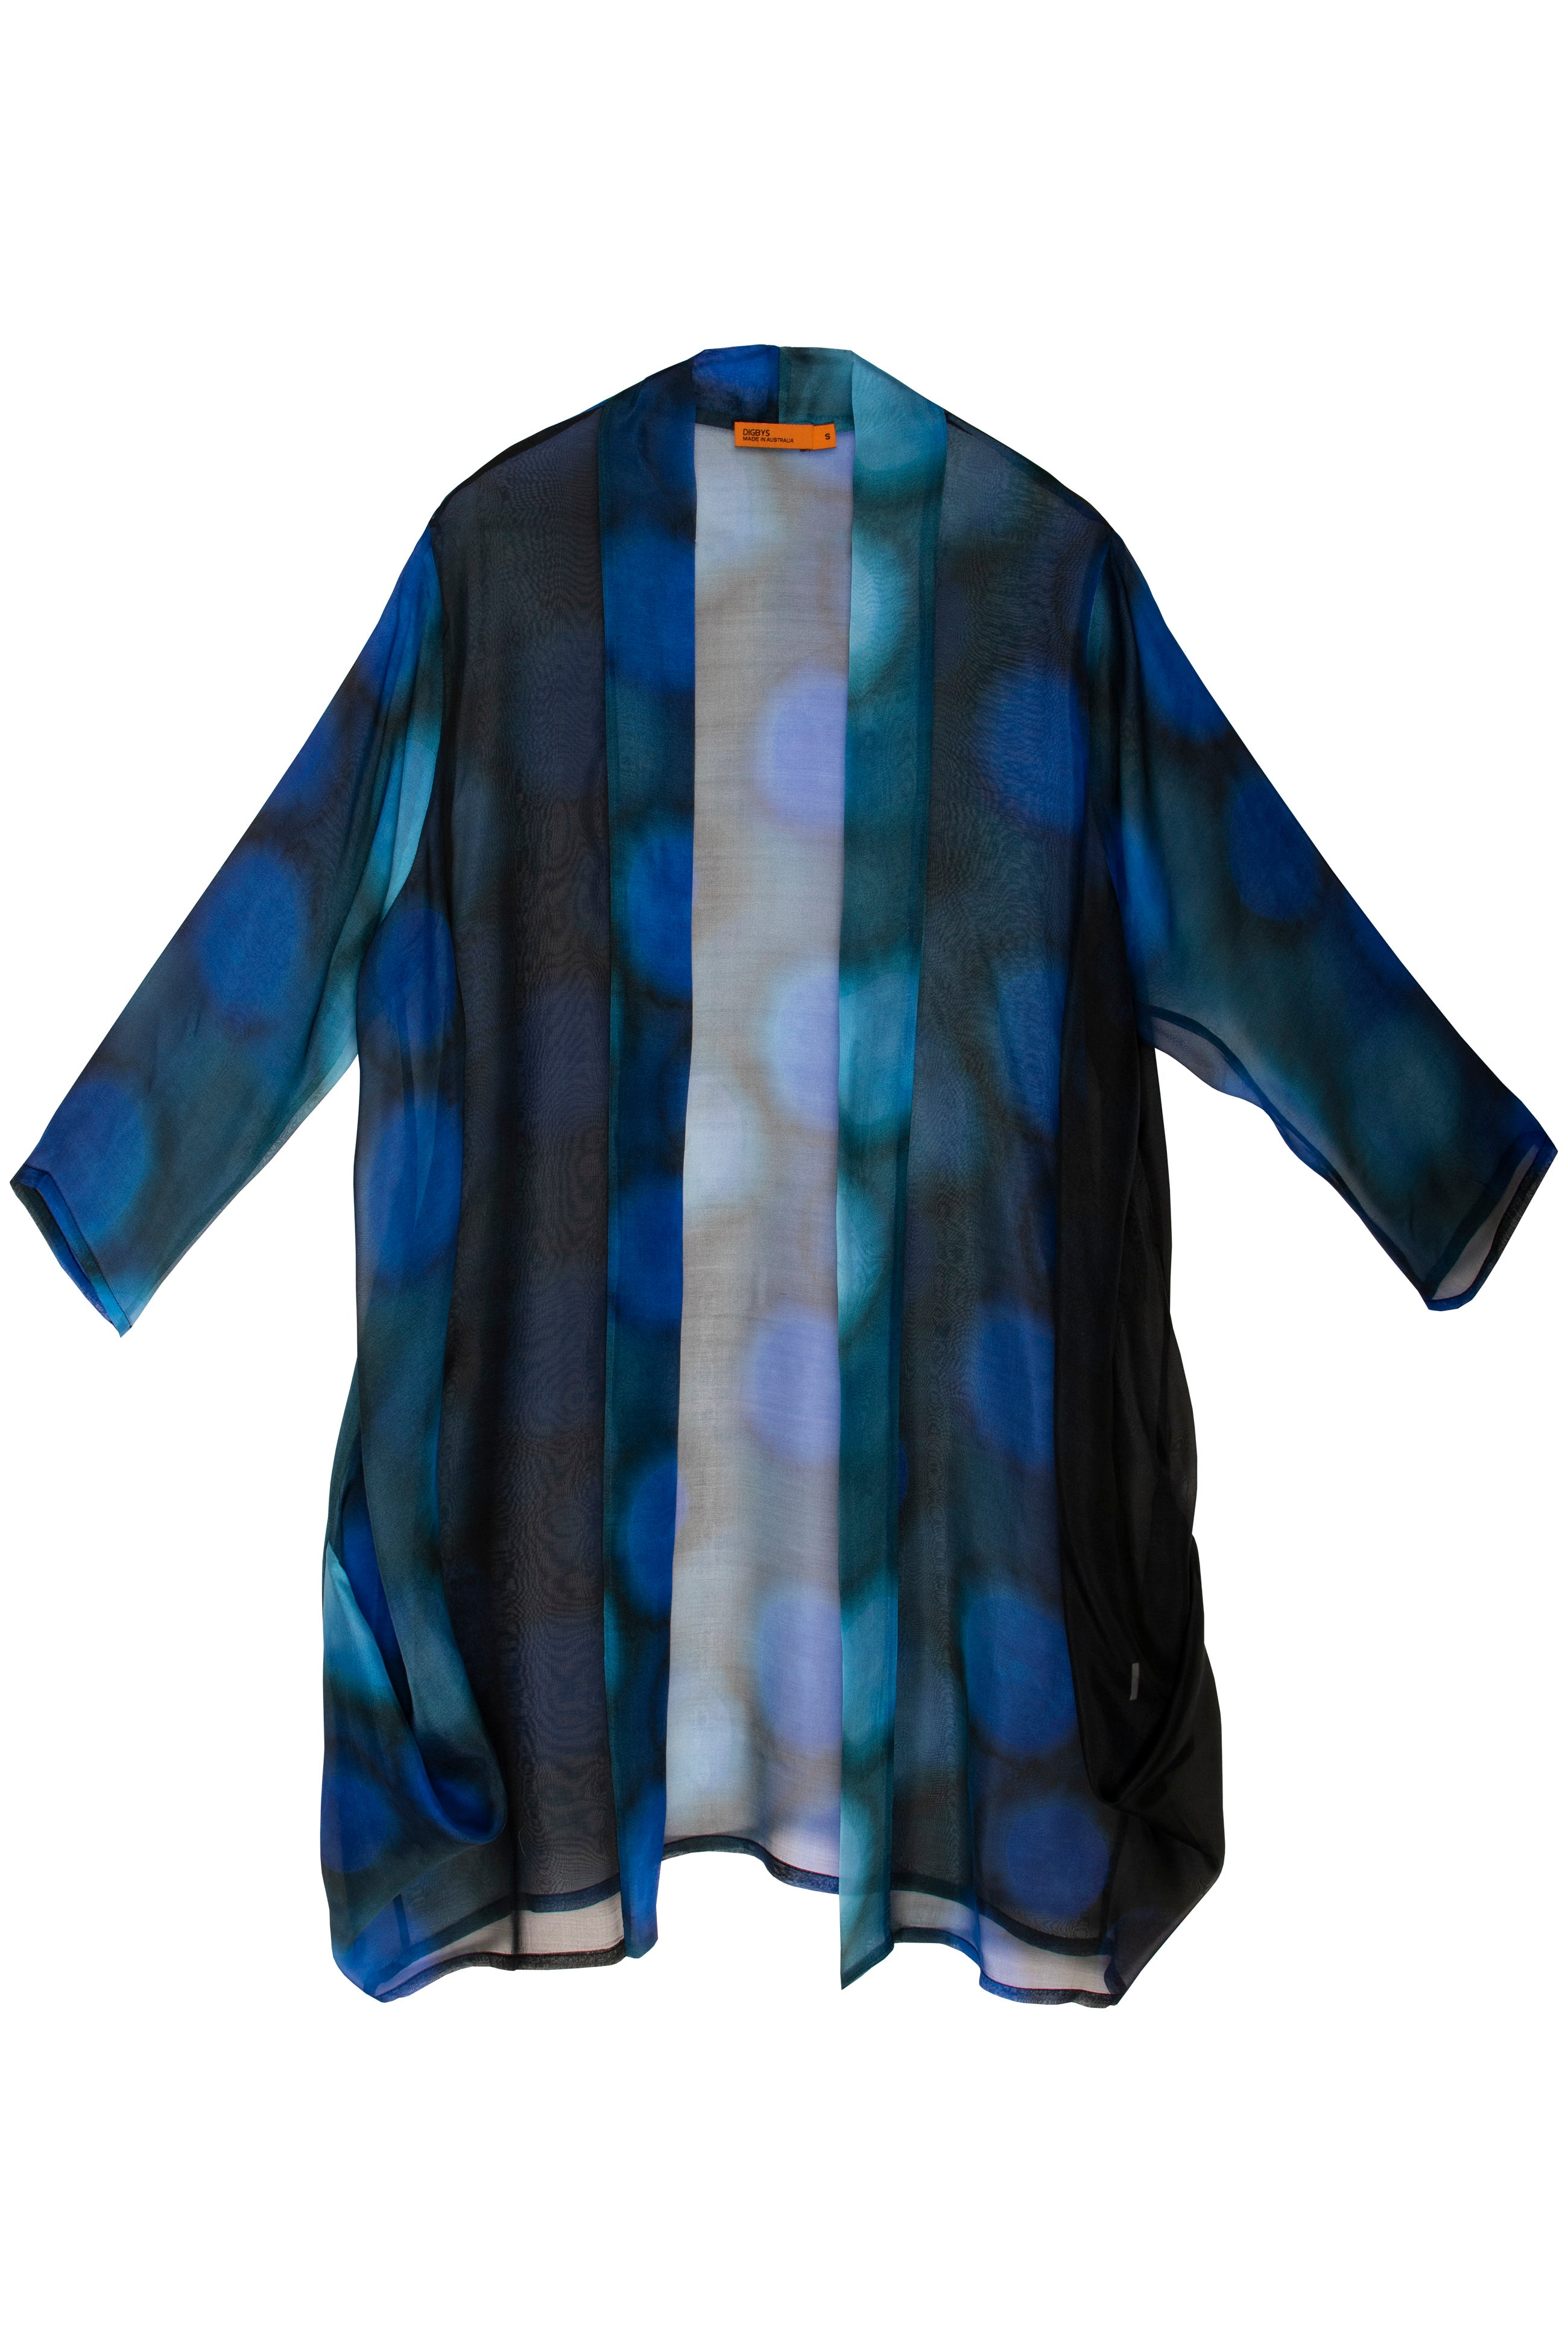 Blue on Blue Side Drape Long Duster 7229